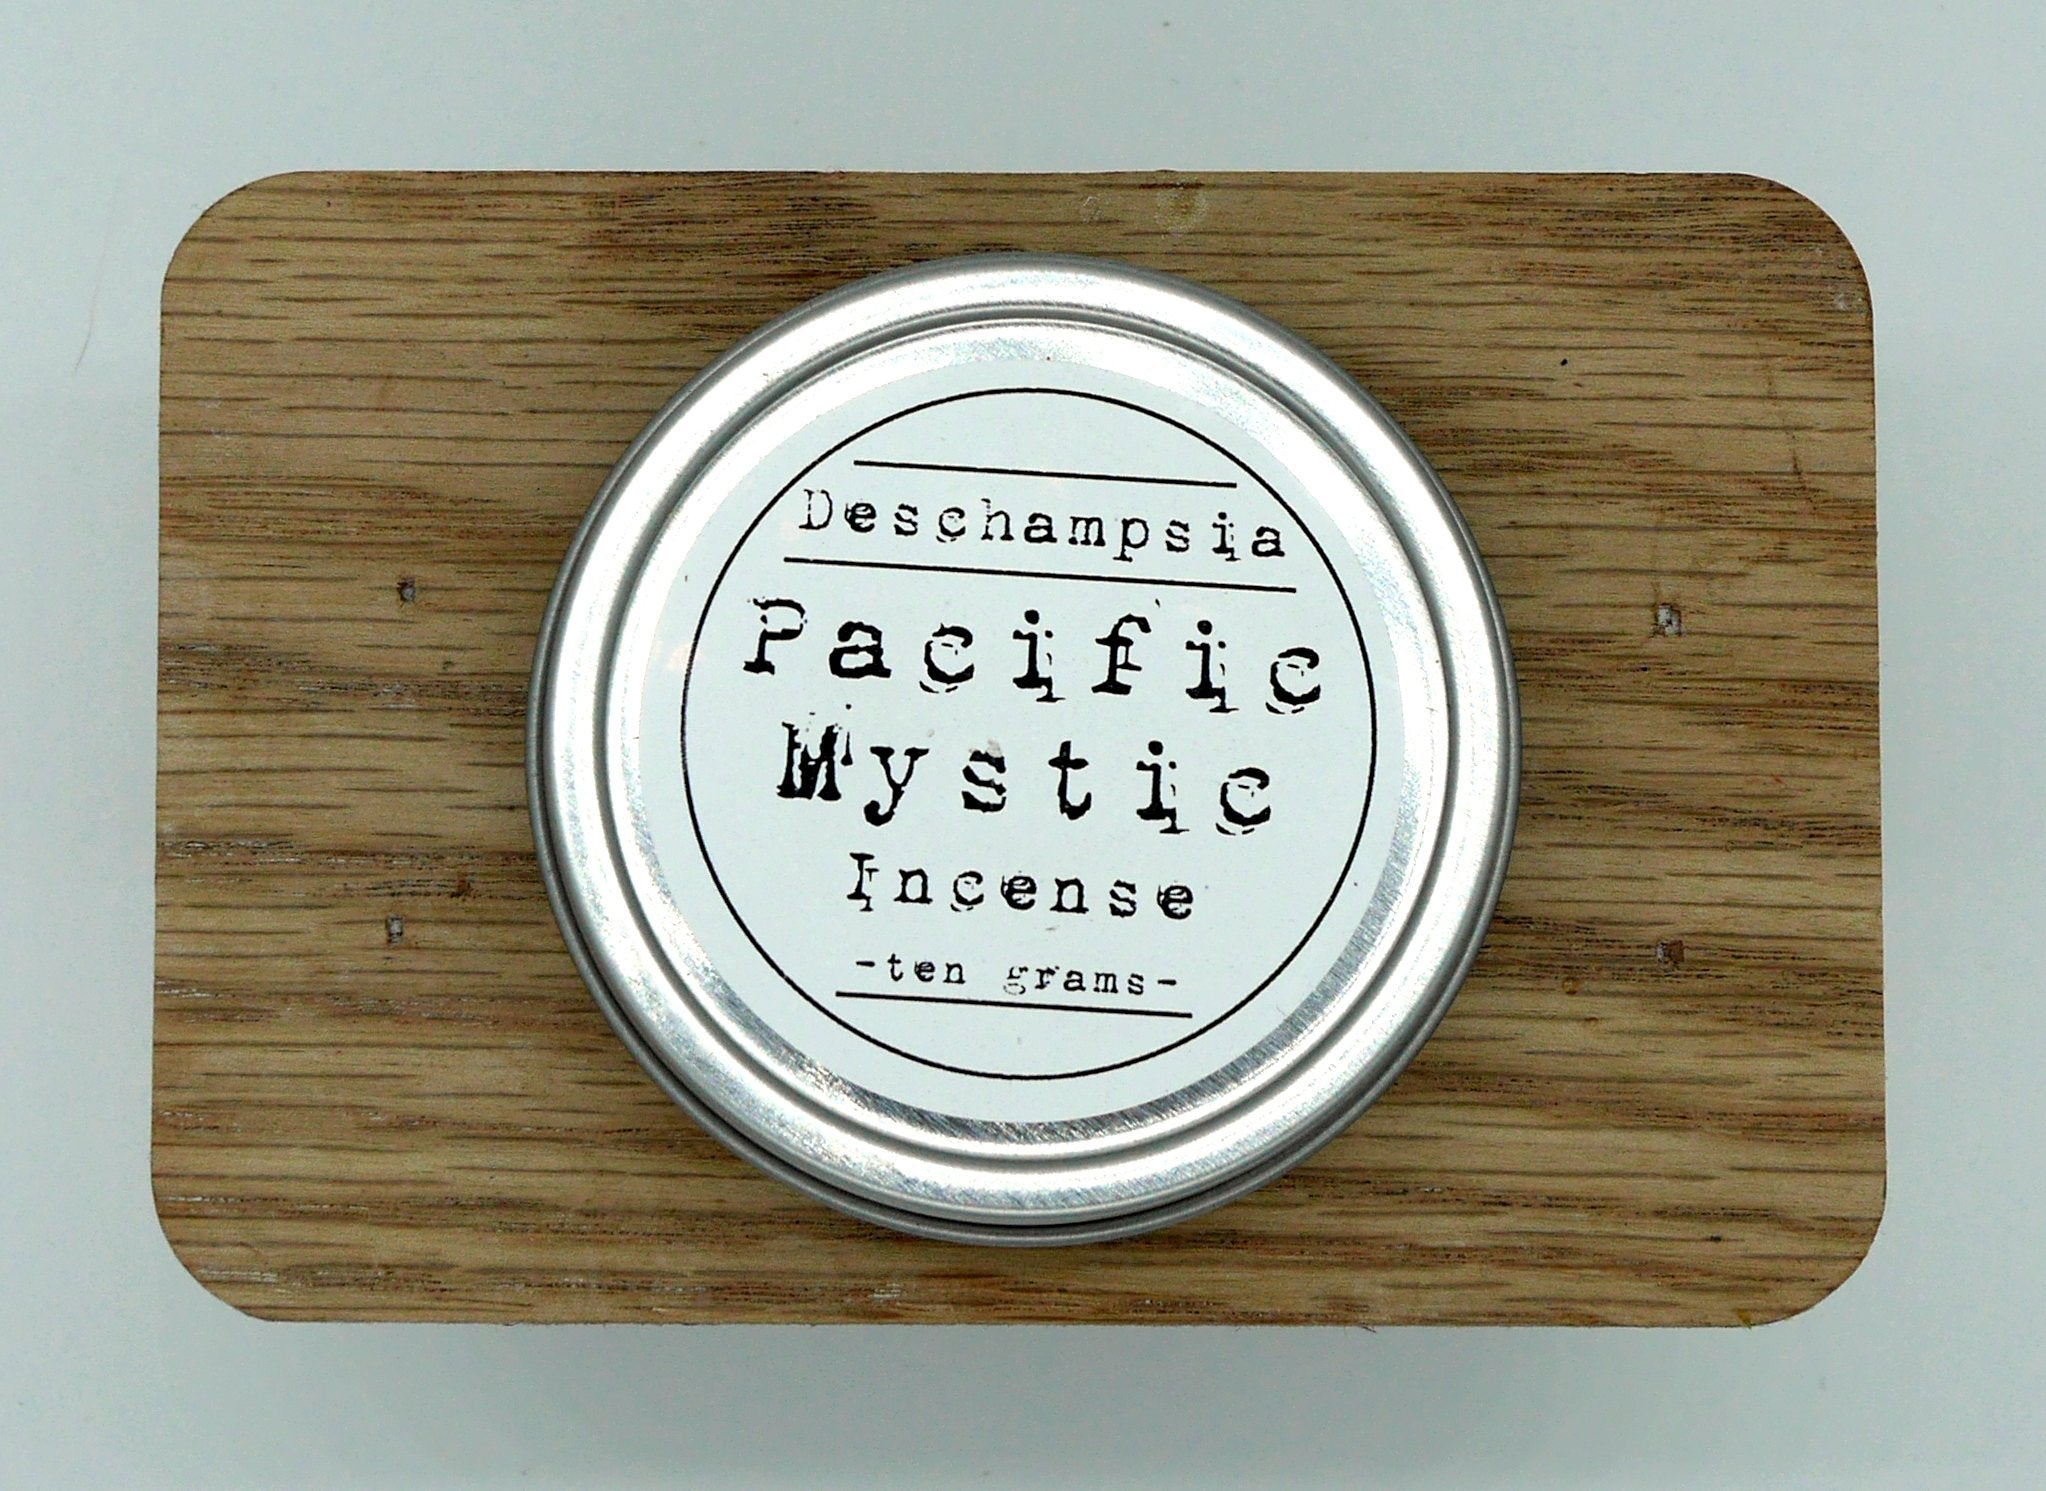 Pacific Mystic Incense - Deschampsia